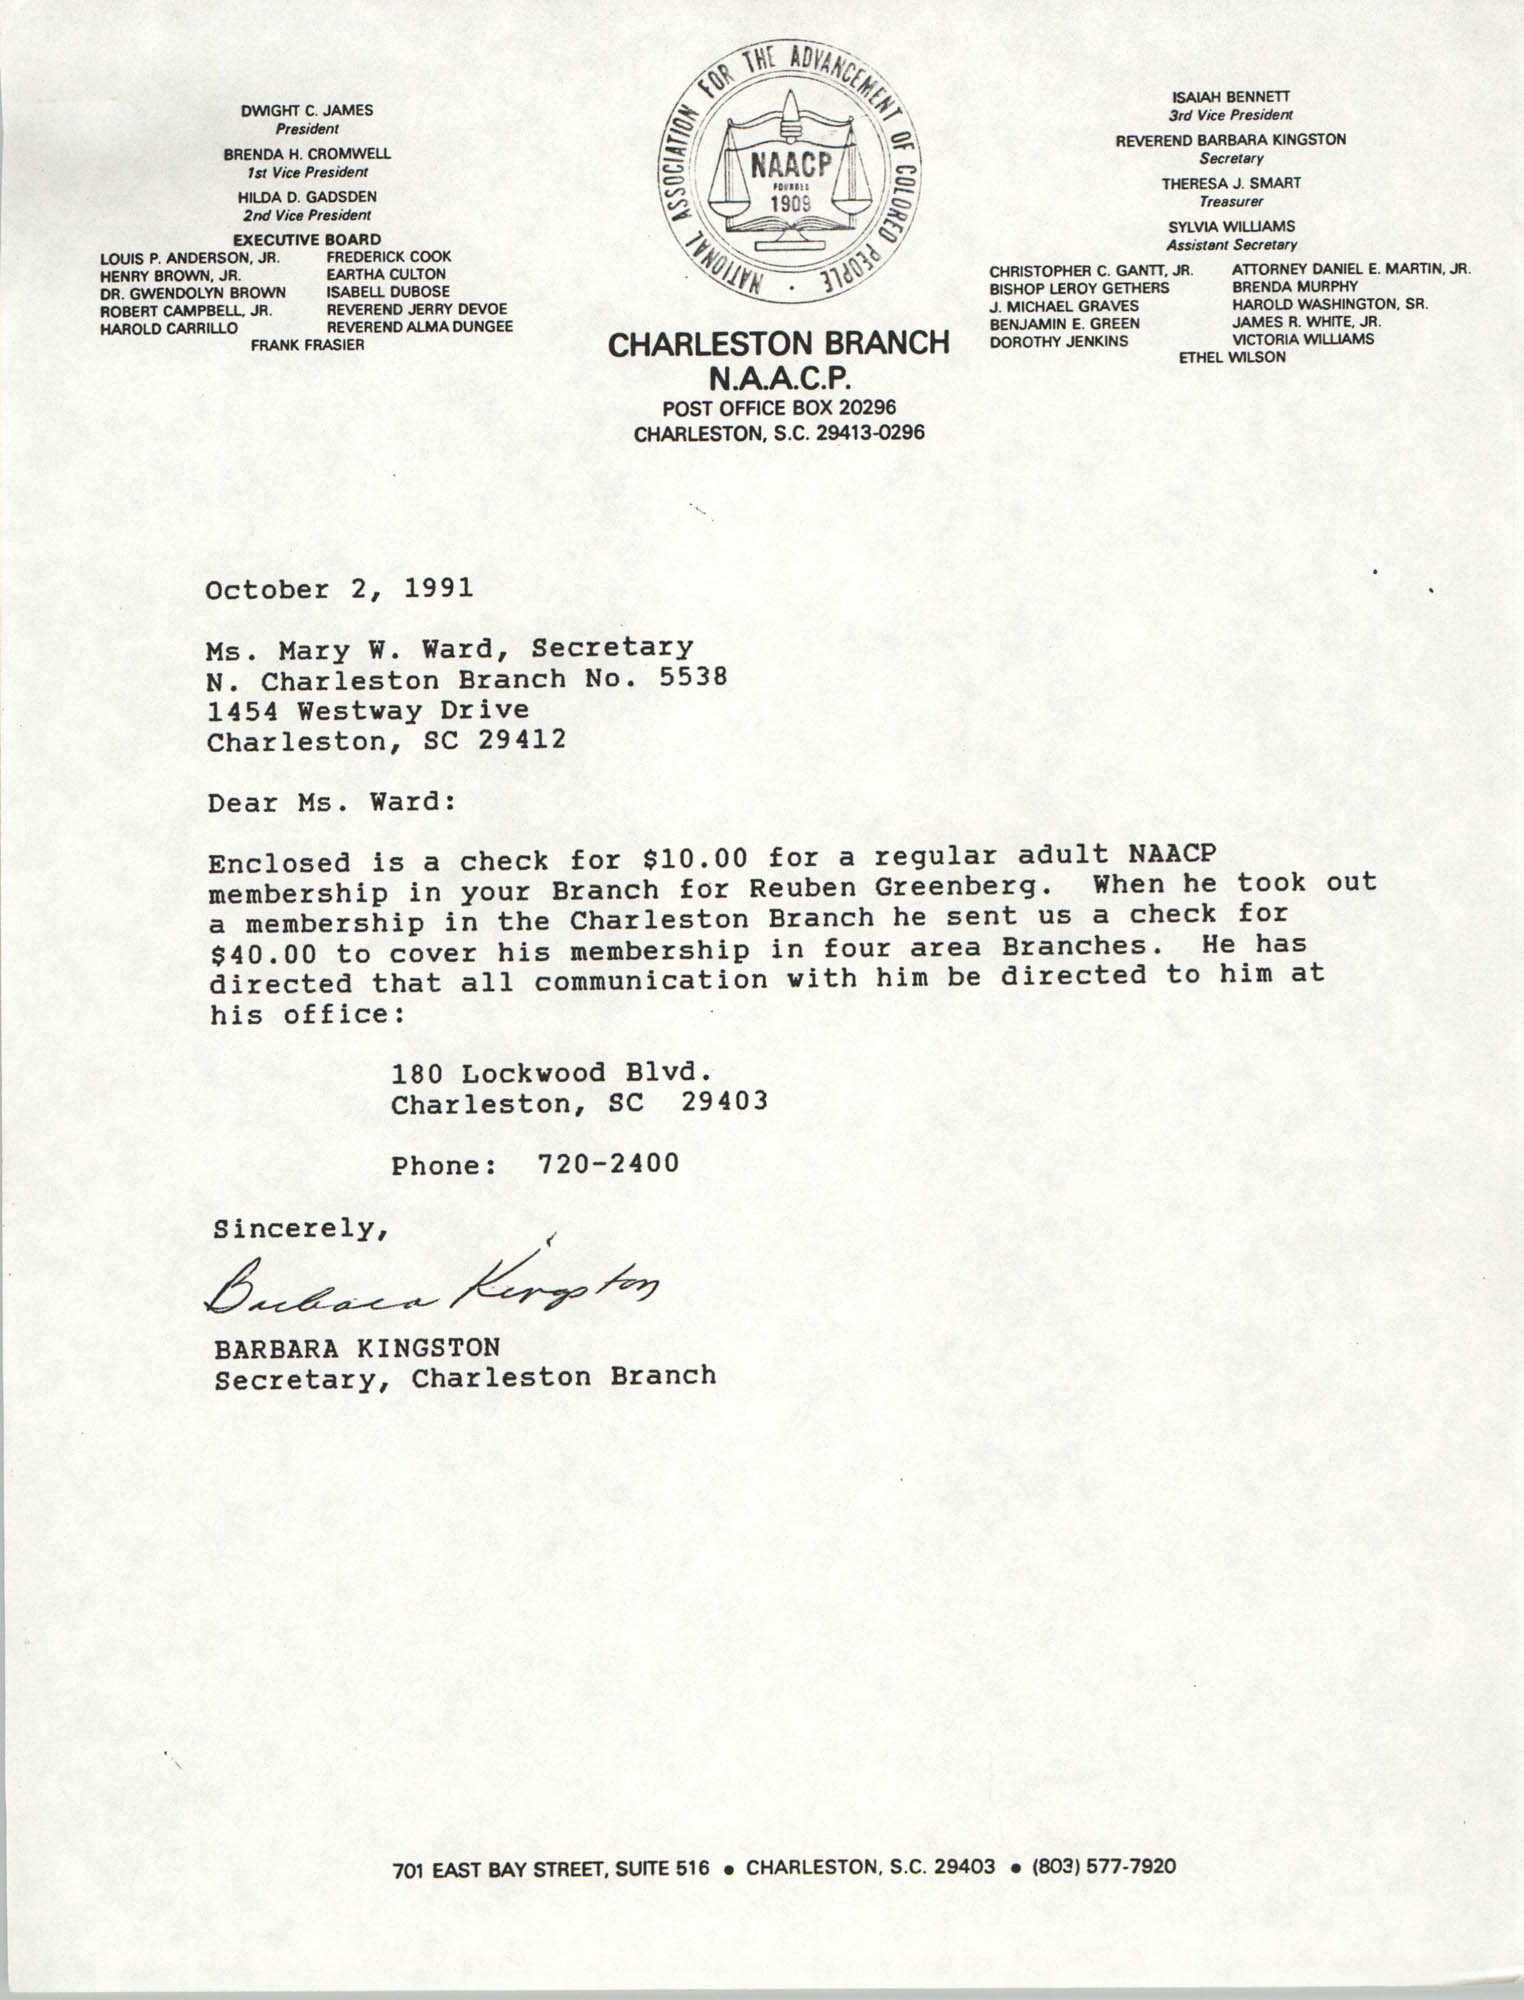 Letter from Barbara Kingston to Mary W. Ward, October 2, 1991